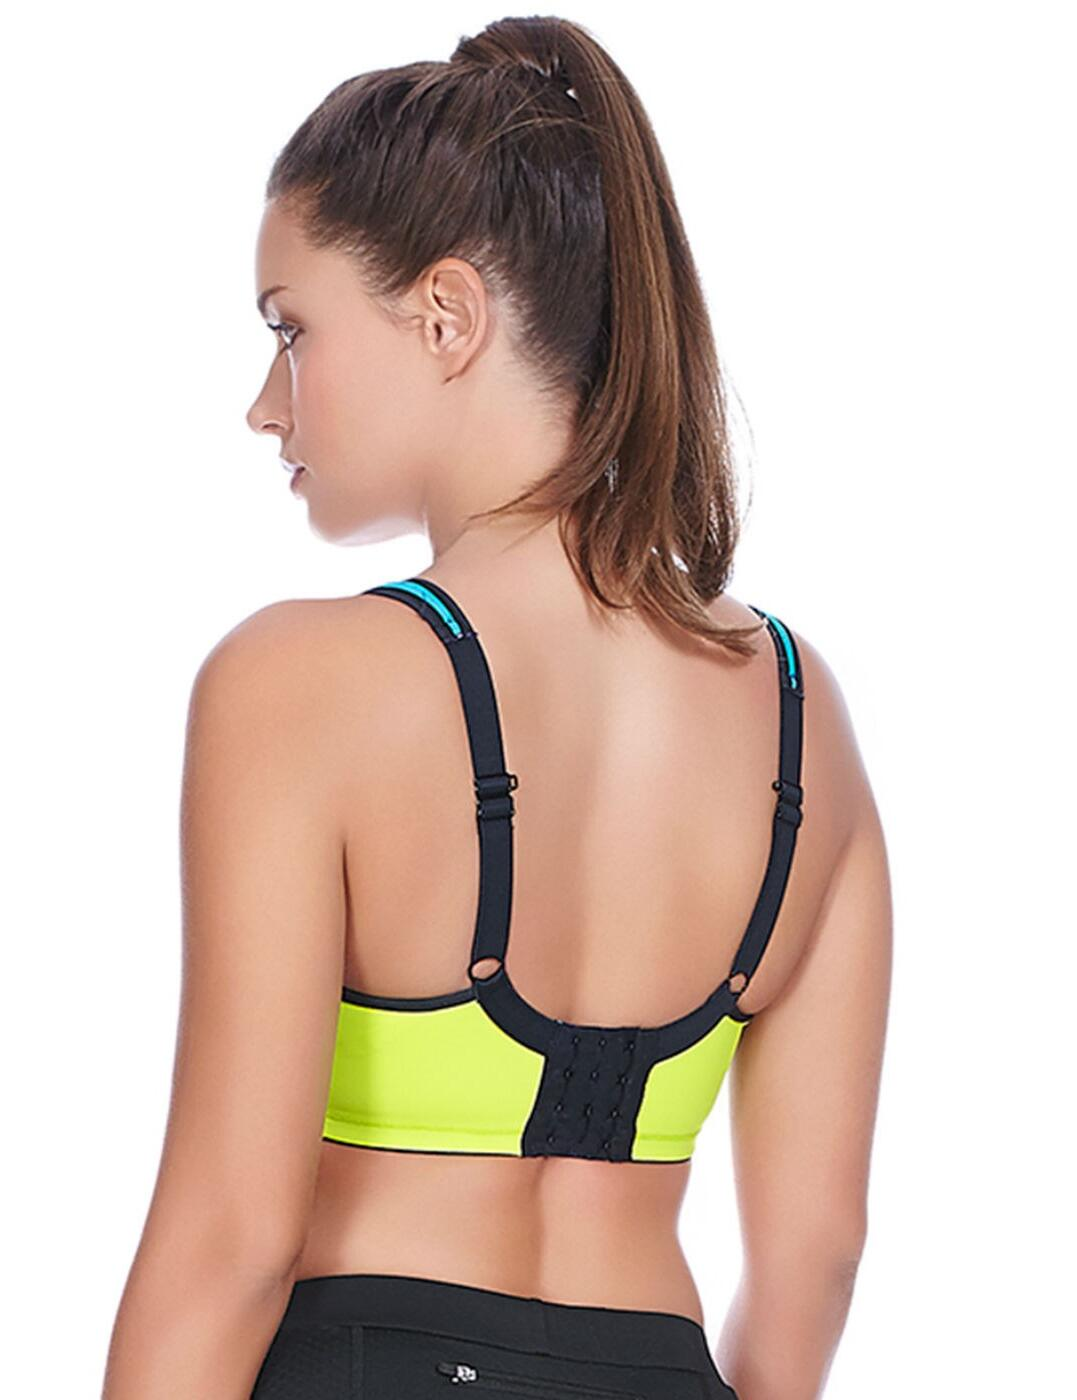 Freya-Active-Sonic-Sports-Bra-4892-Underwired-High-Impact-Gym-Workout-Bras thumbnail 12